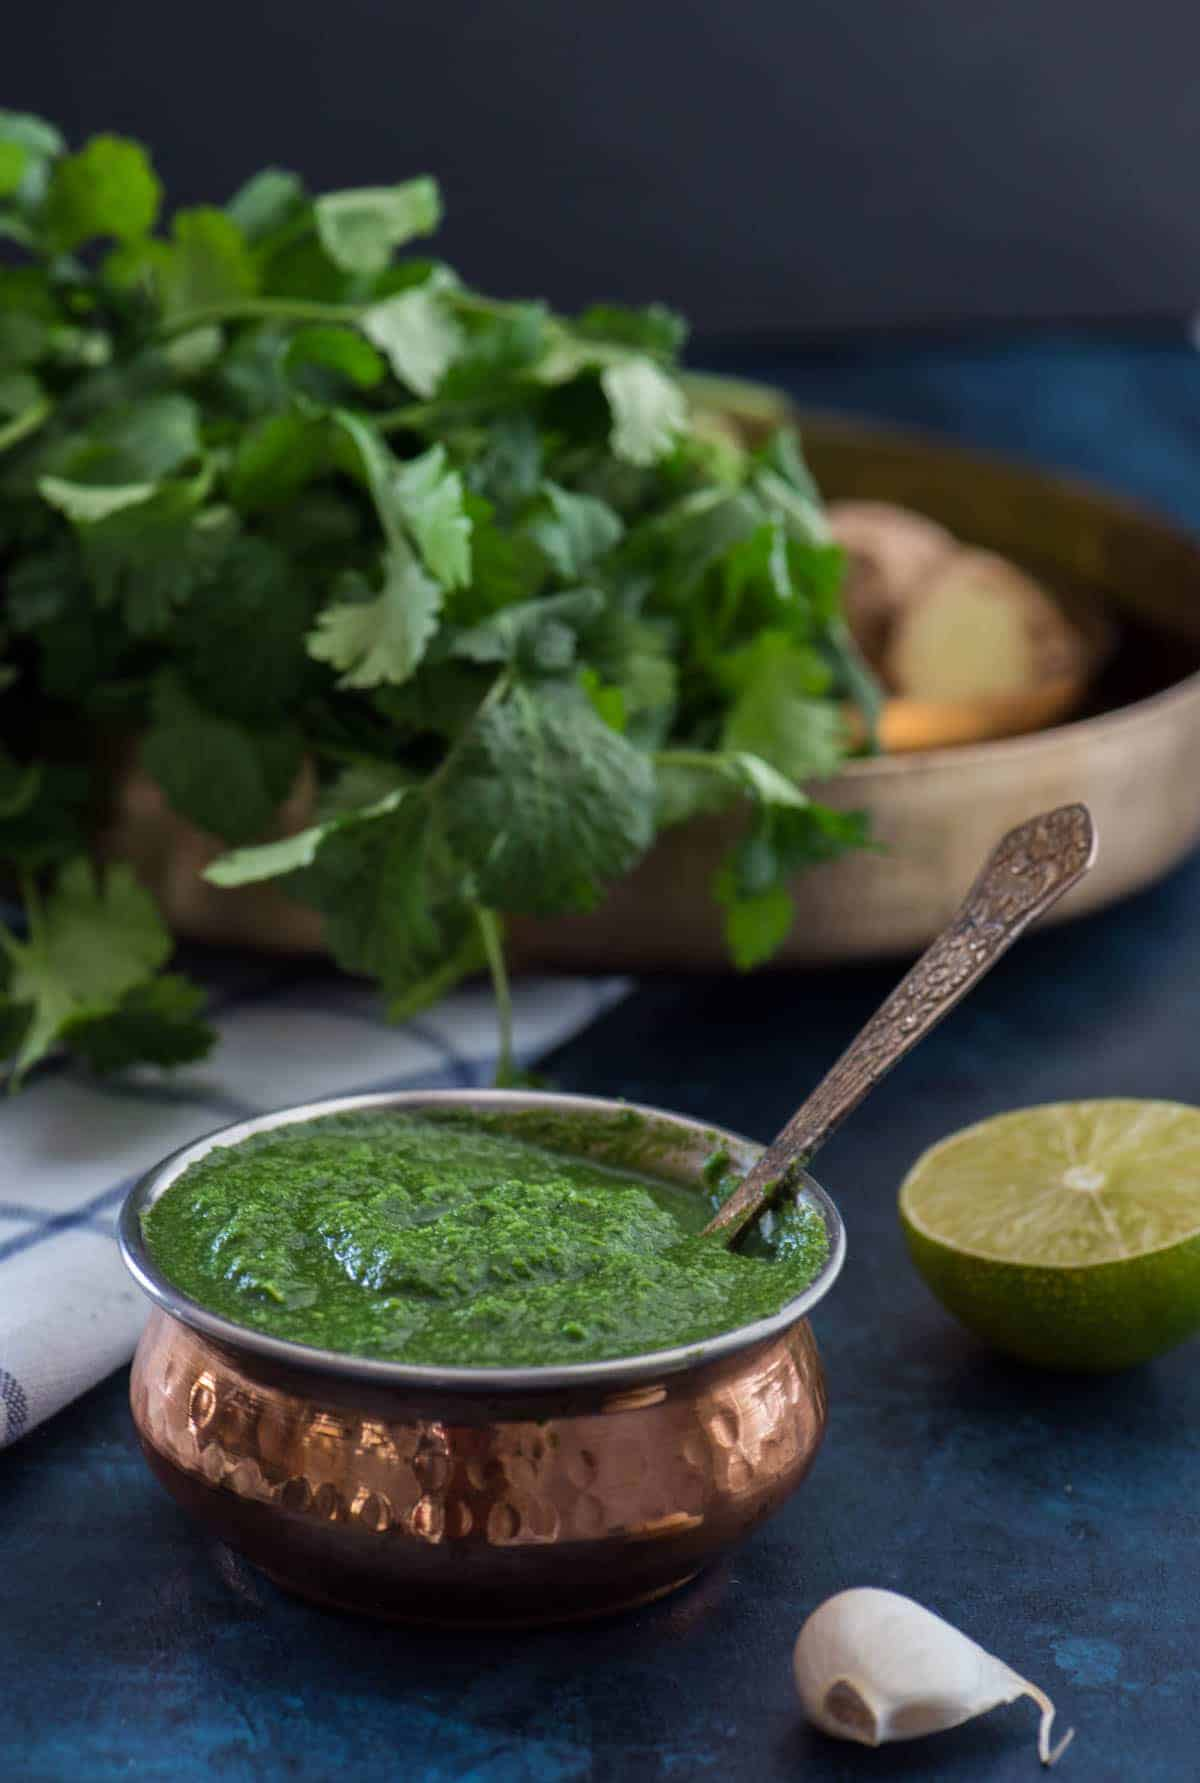 Green chutney served in a copper bowl. Also shown are the ingredients for coriander chutney - 1/2 of lime, garlic, coriander/cilantro leaves